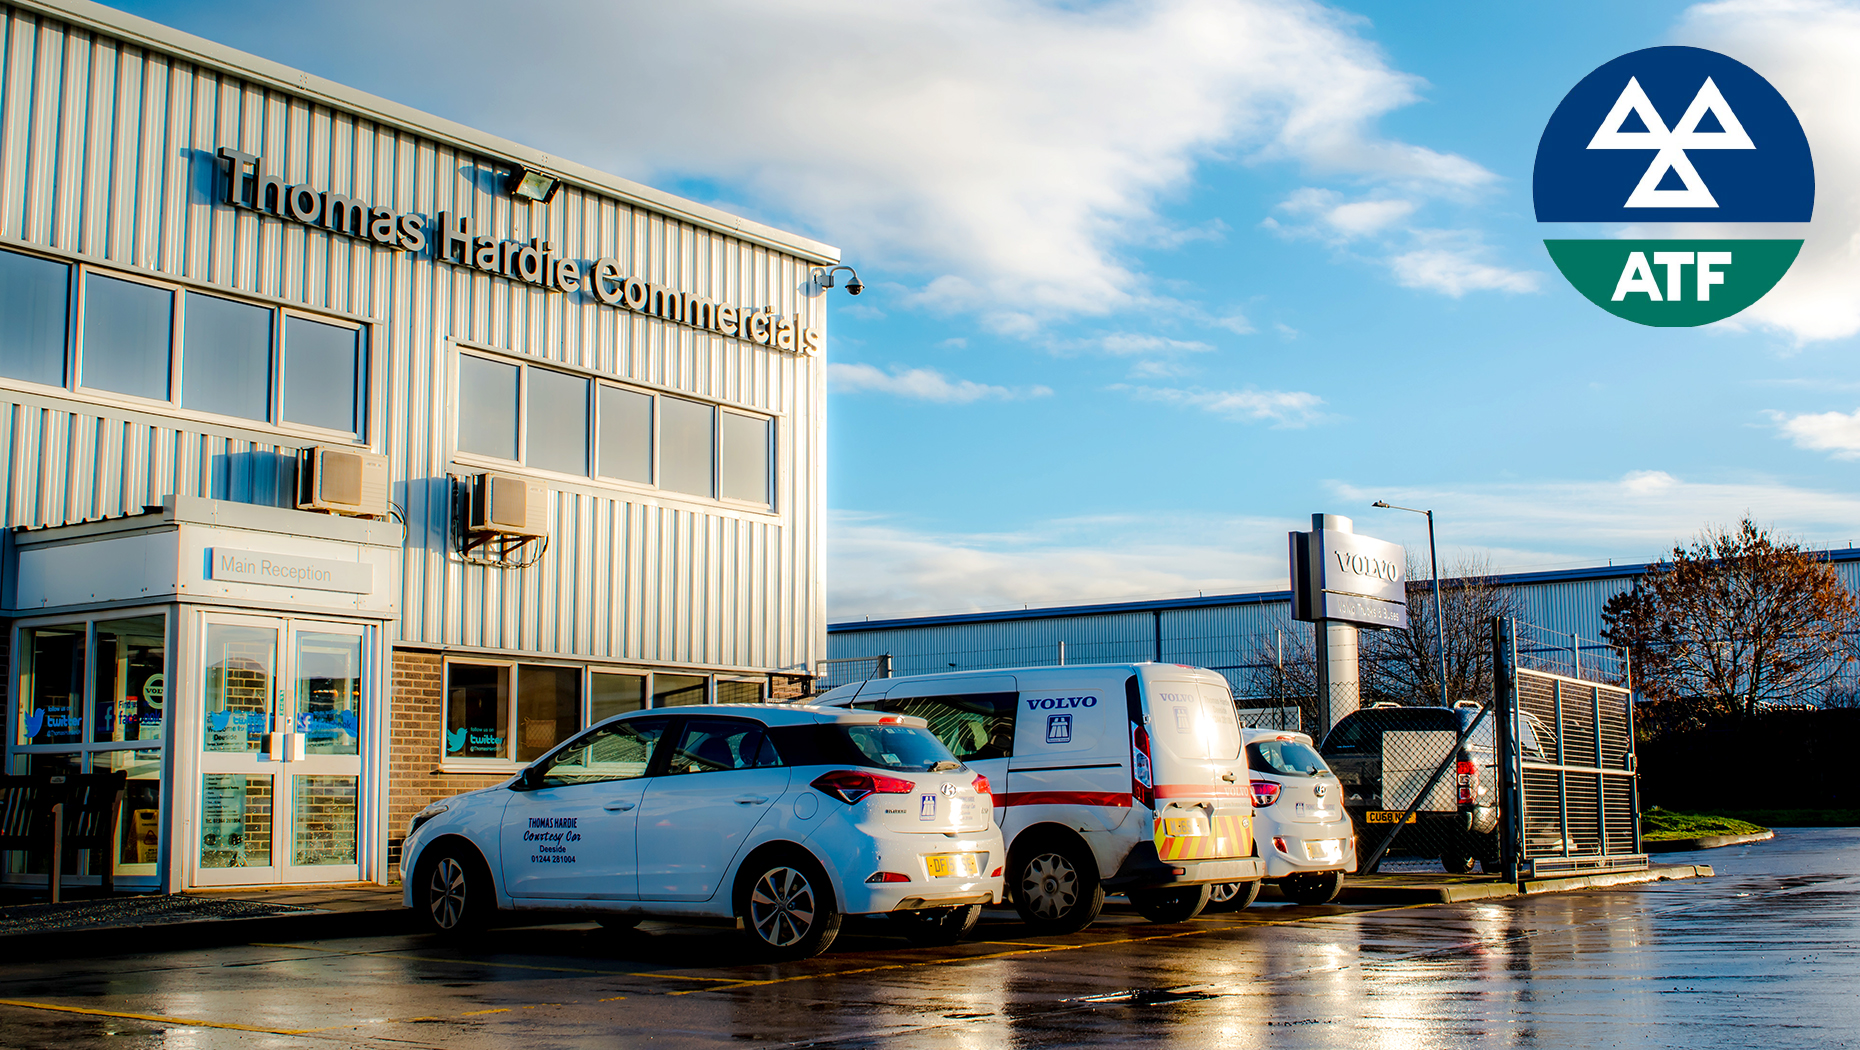 Our Deeside Depot